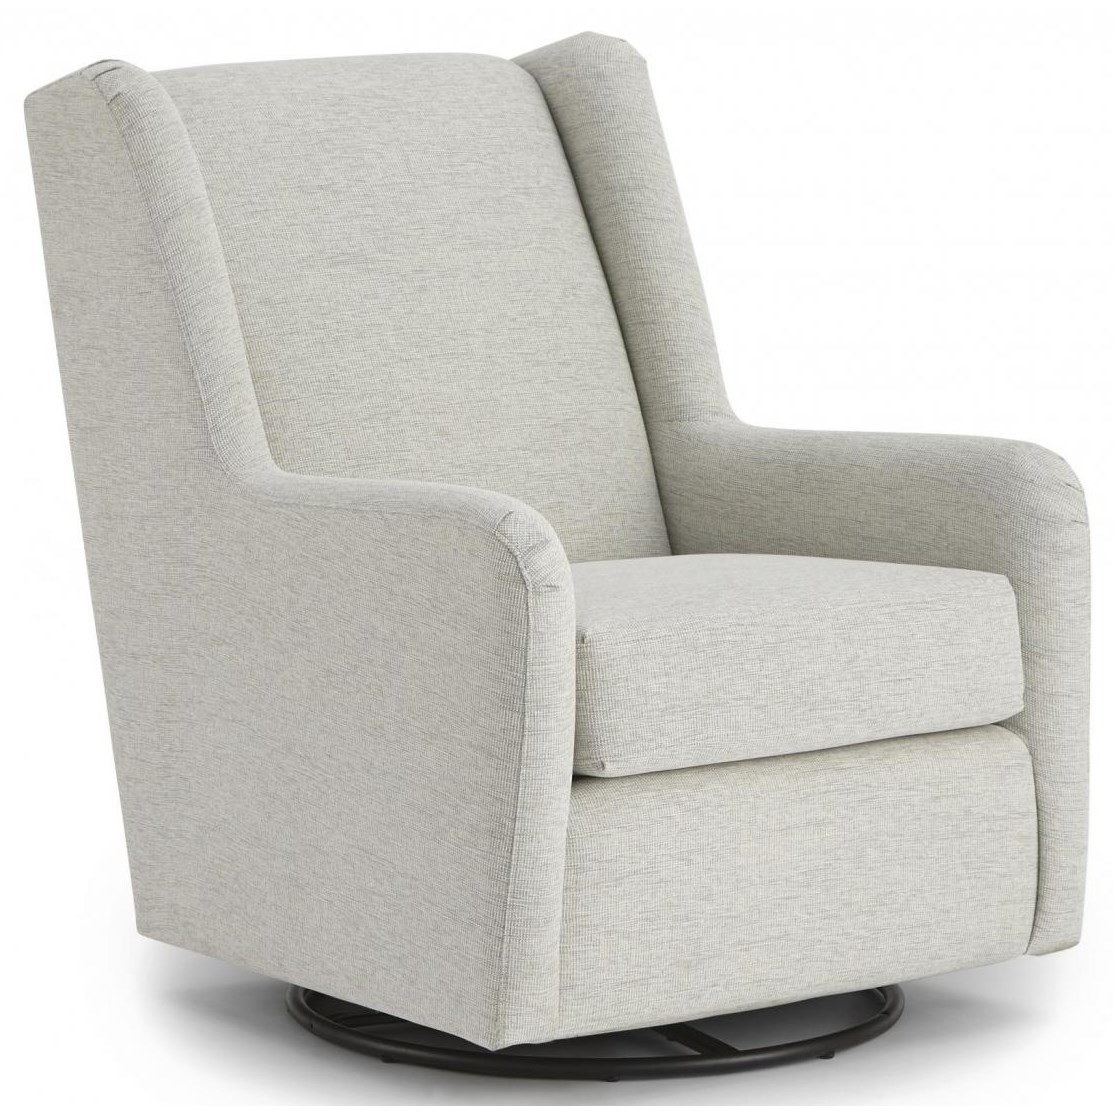 Brianna Swivel Glider by Best Home Furnishings at Baer's Furniture